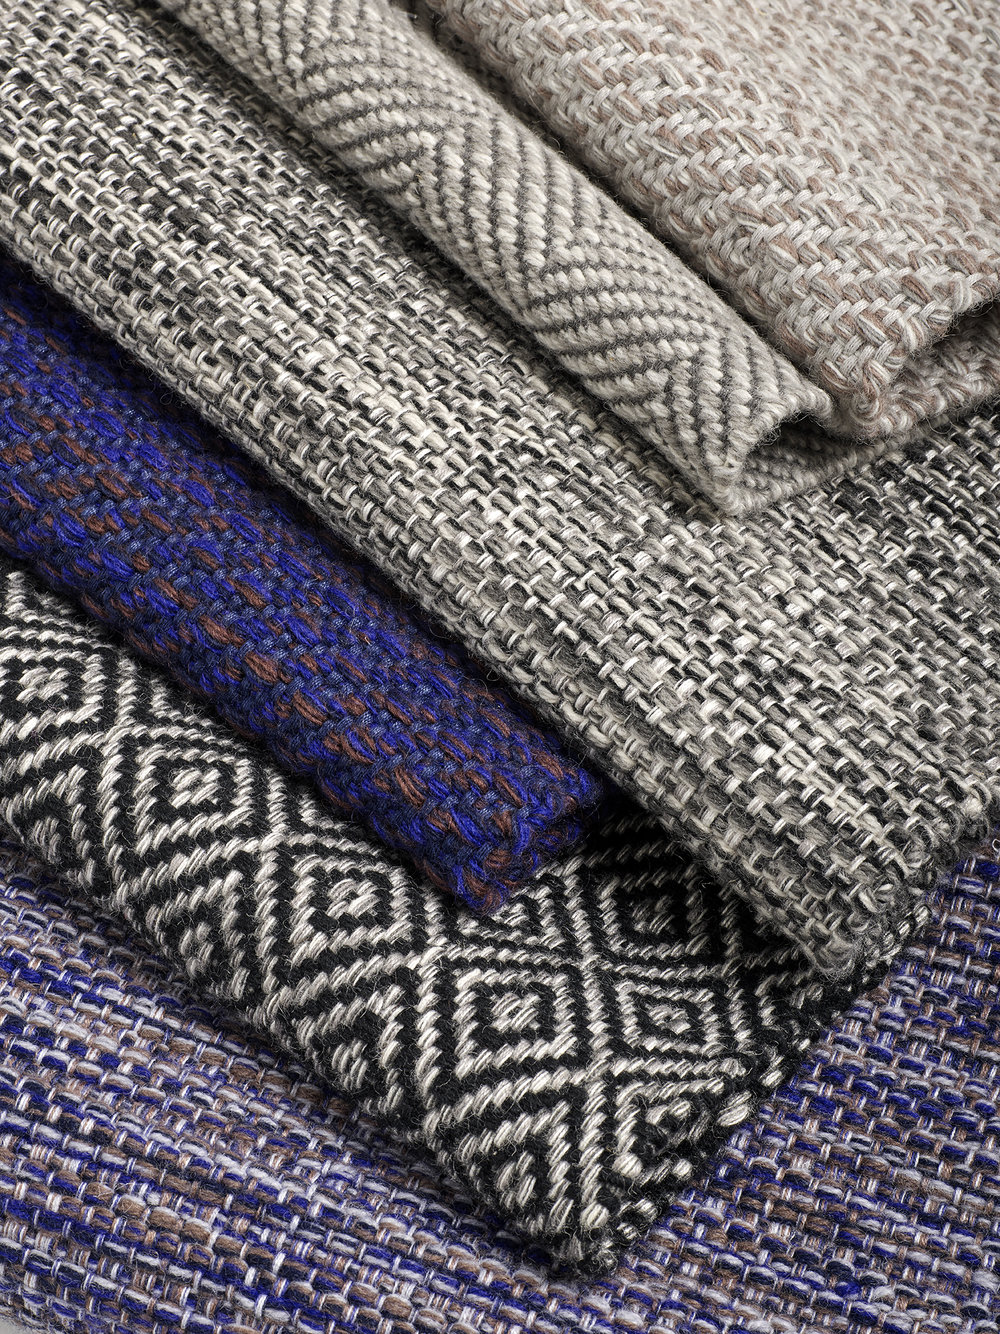 A stack of woven rugs in purple and gray with different geometric patterns.